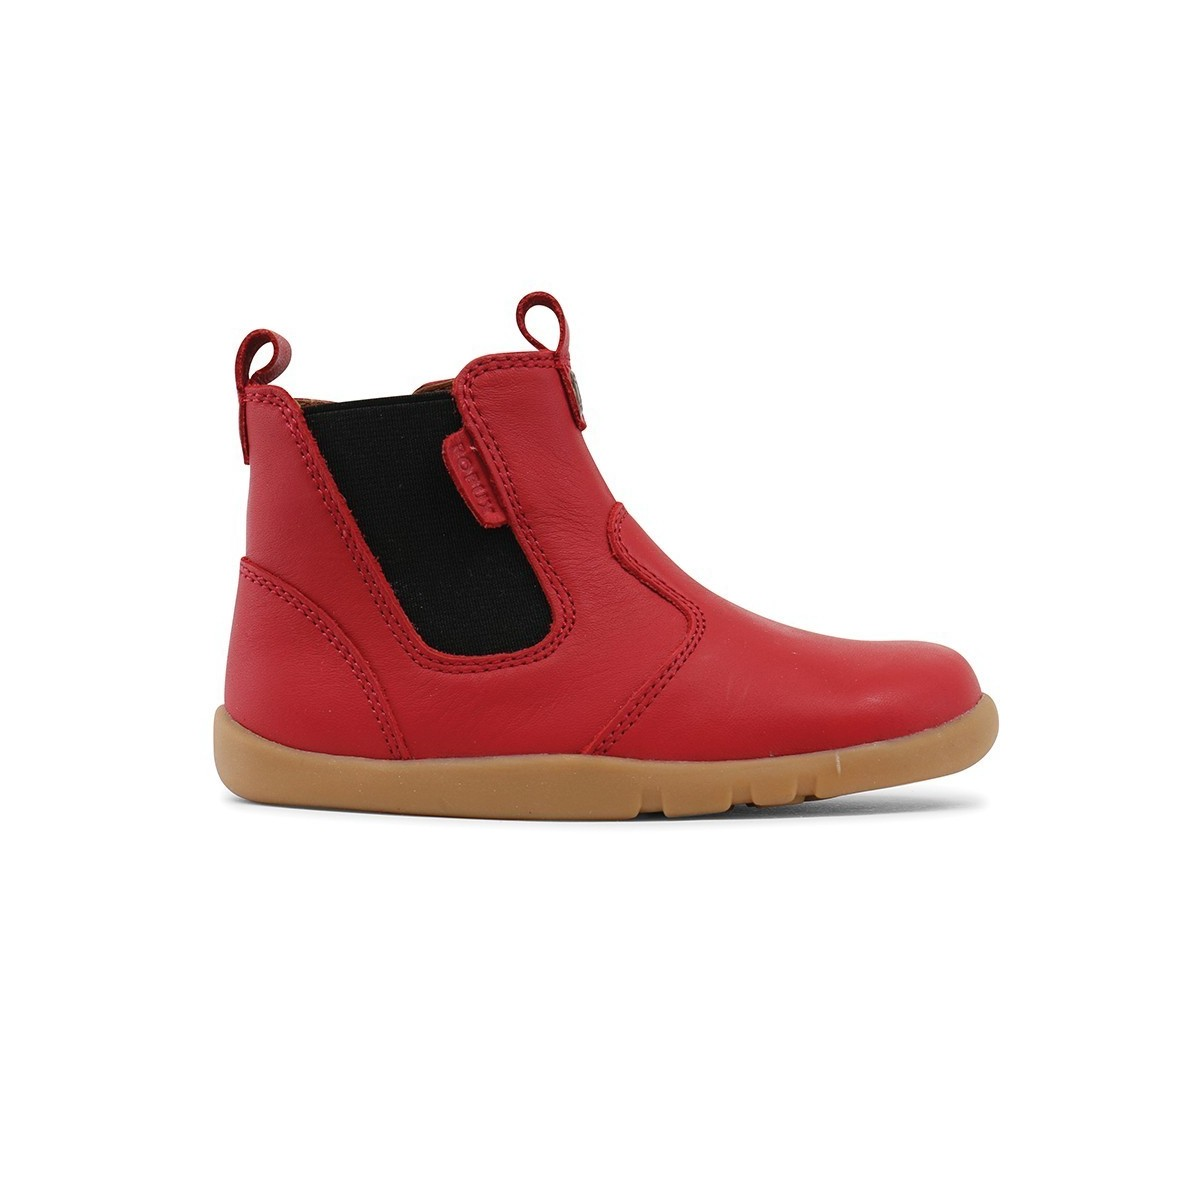 11f3029b572 Boots Outback cuir rouge